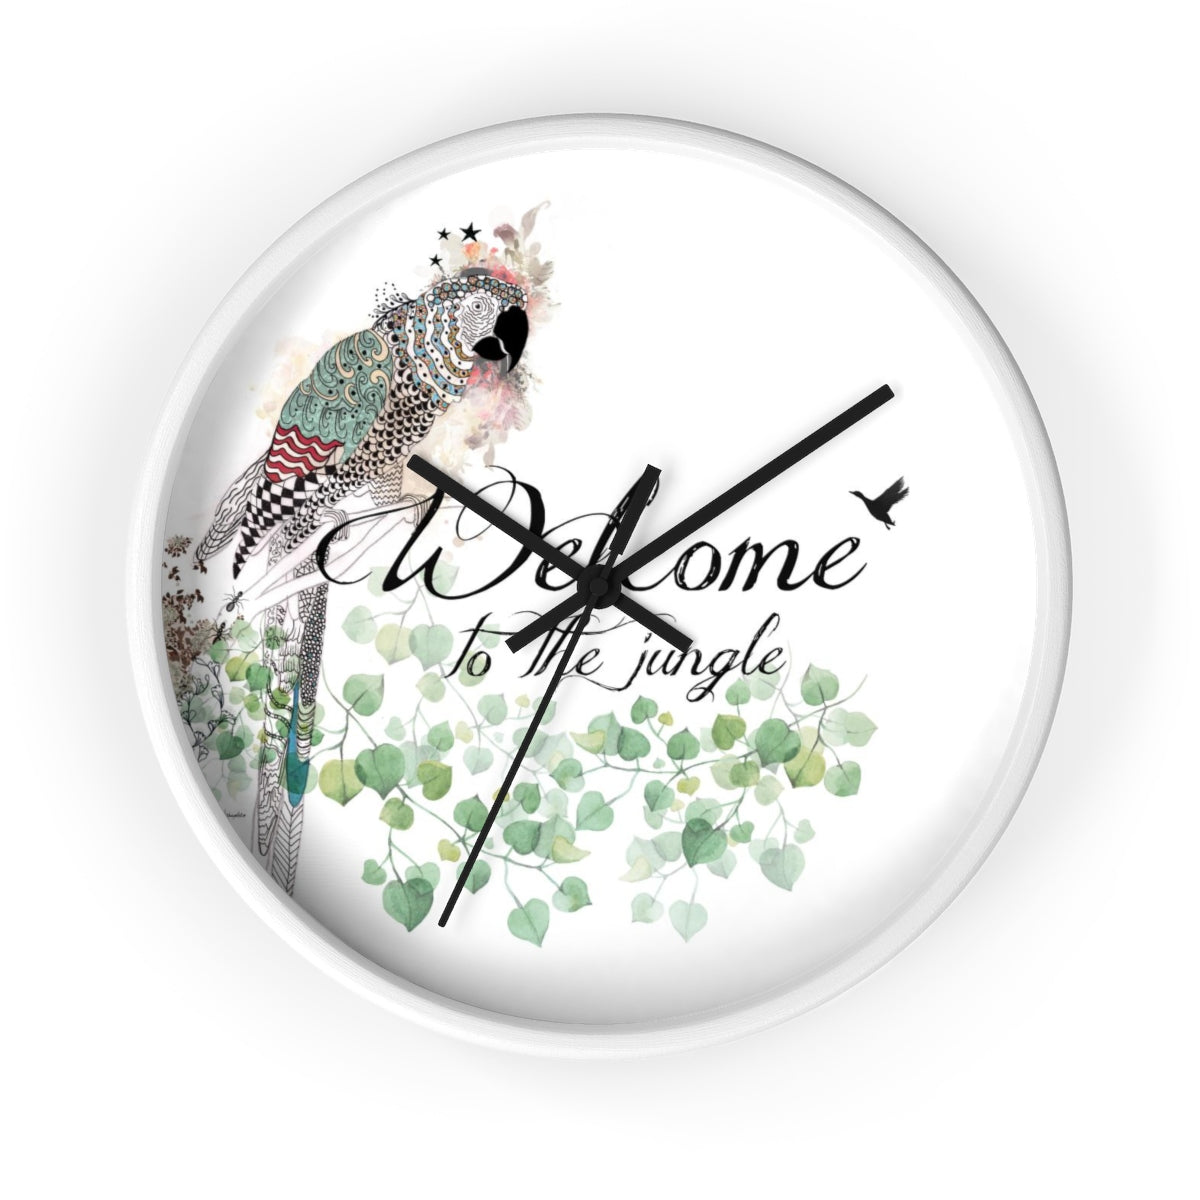 colorful wall clock with a parrot illustration - Liz Kapiloto Art & Design